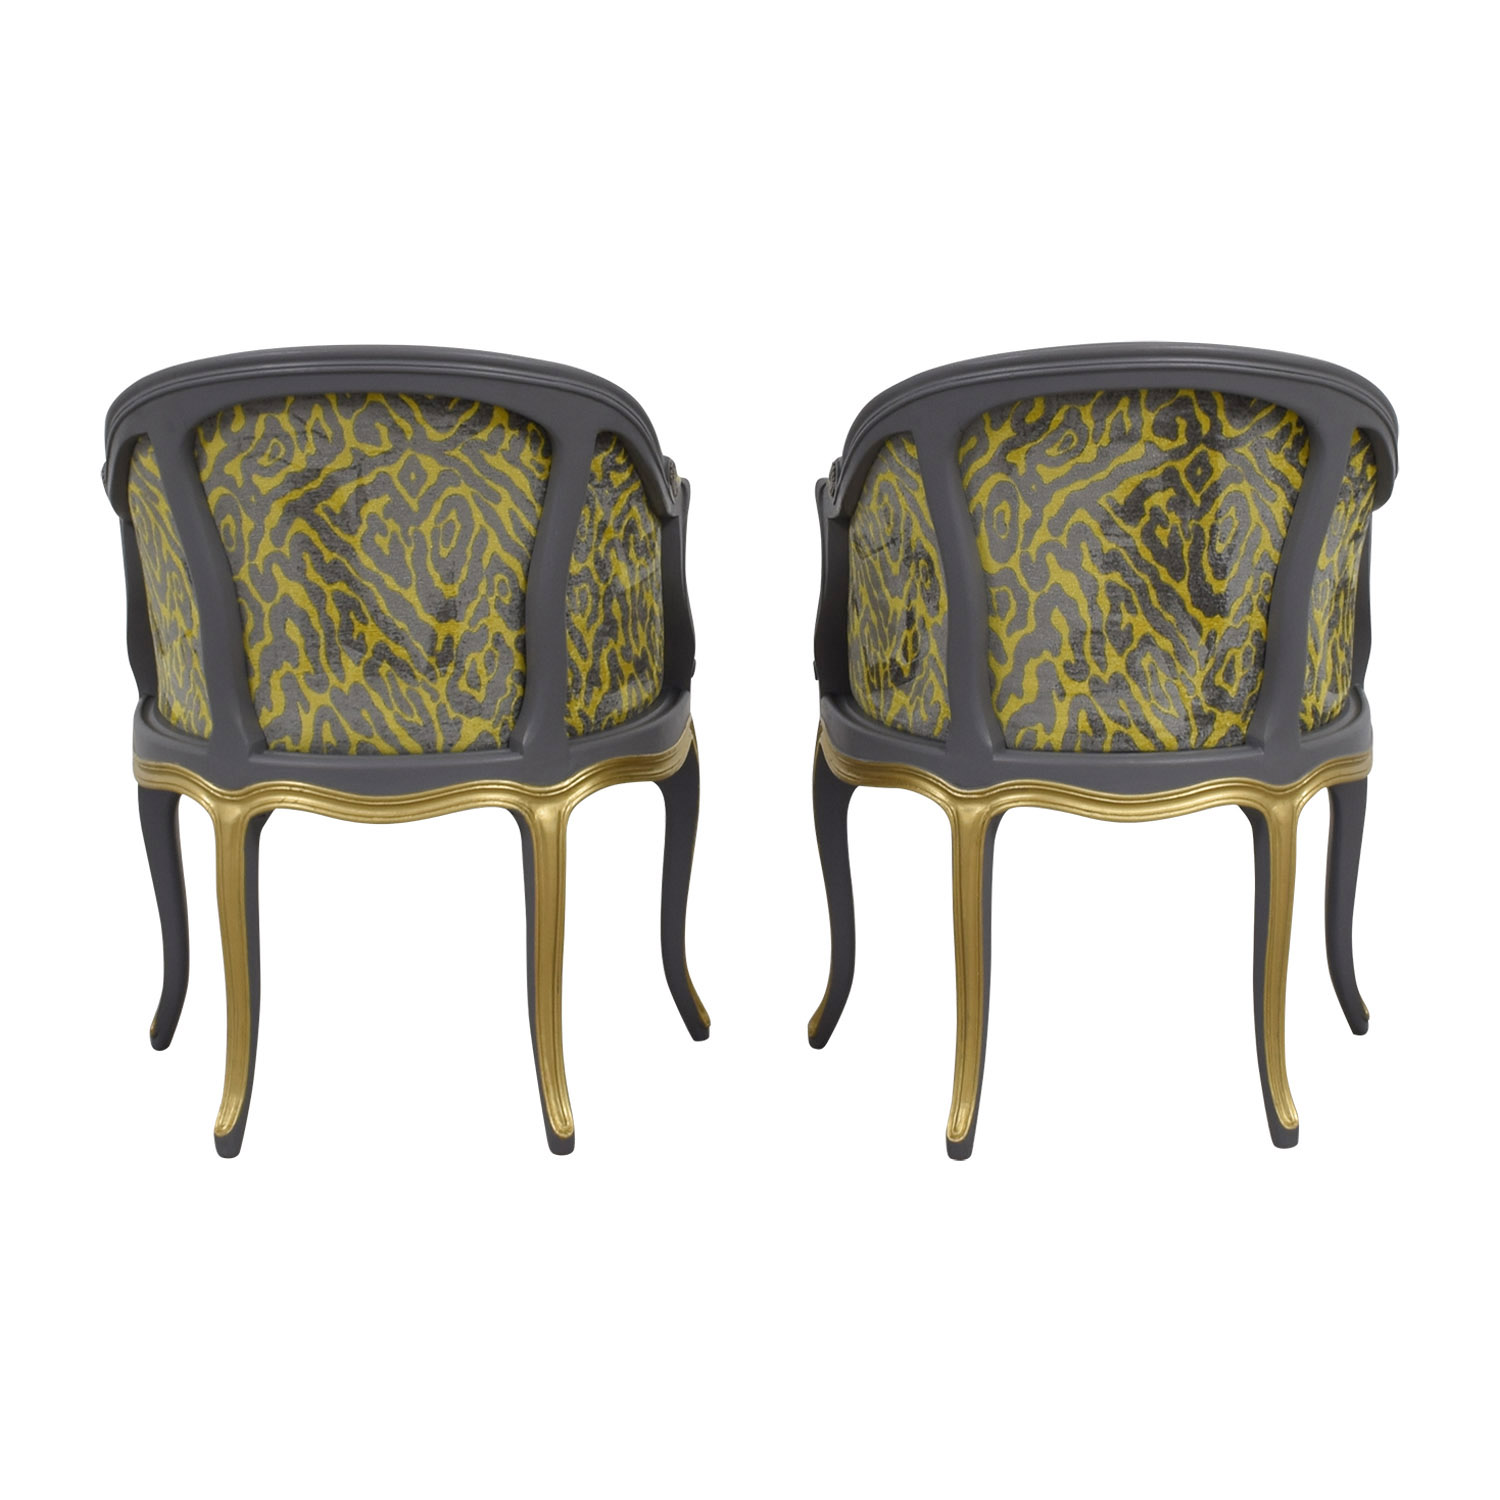 Country French Grey and Yellow Accent Chairs for sale